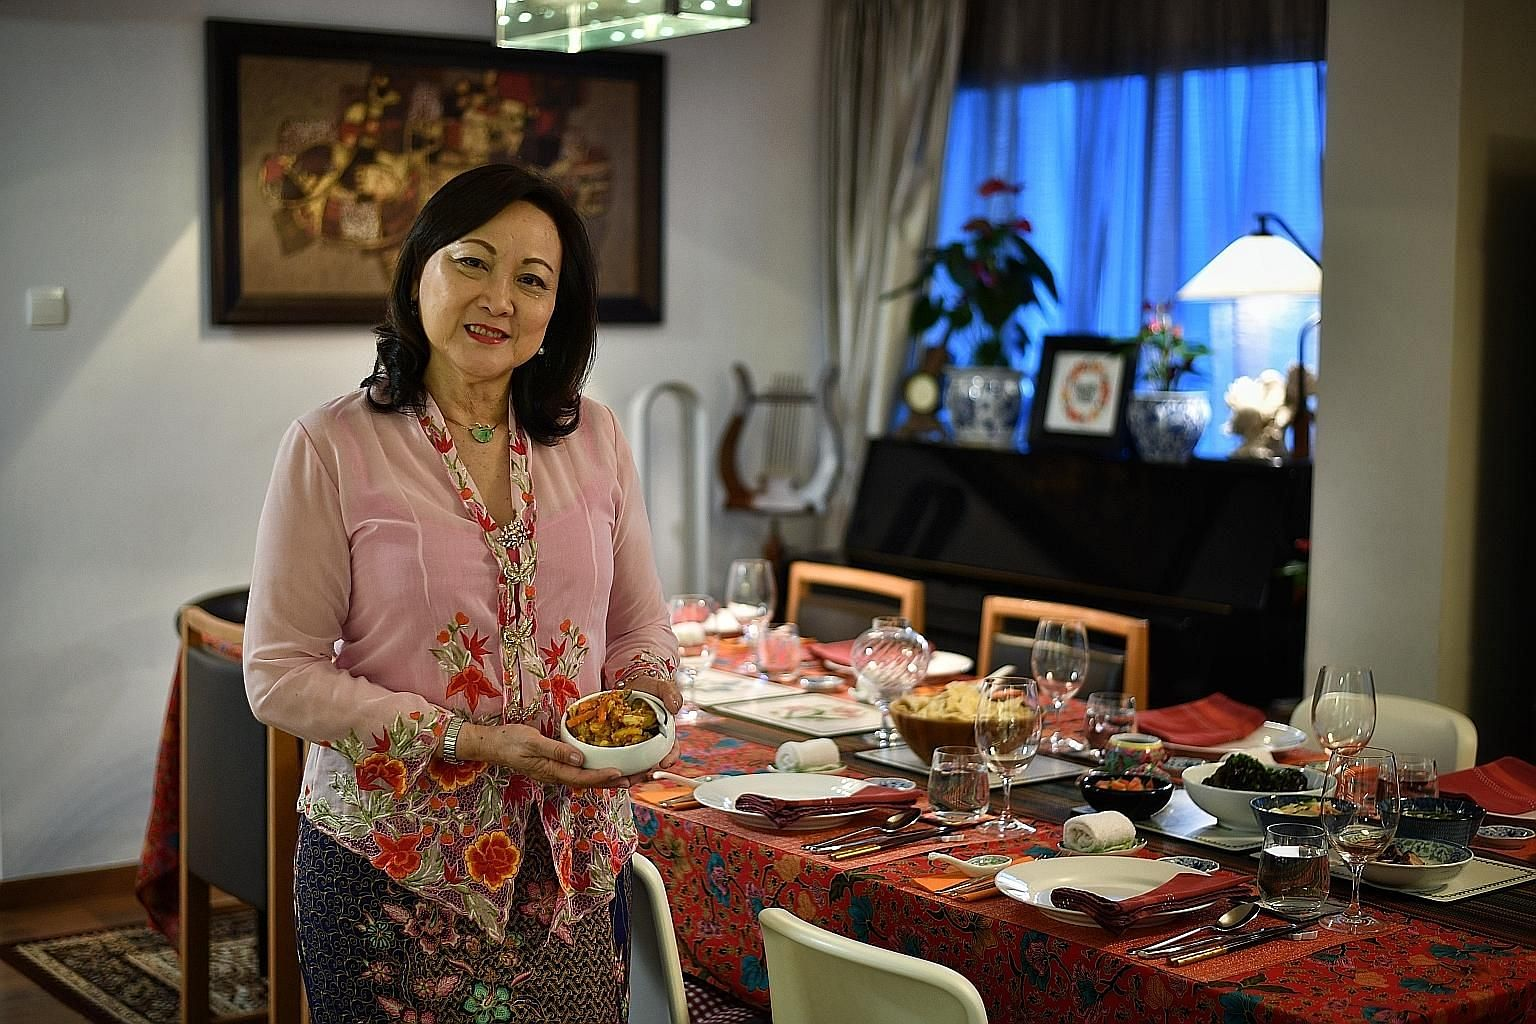 Lynnette Seah (seen with her achar, or pickled vegetables) serves Peranakan and Western meals in her flat in Tiong Bahru.